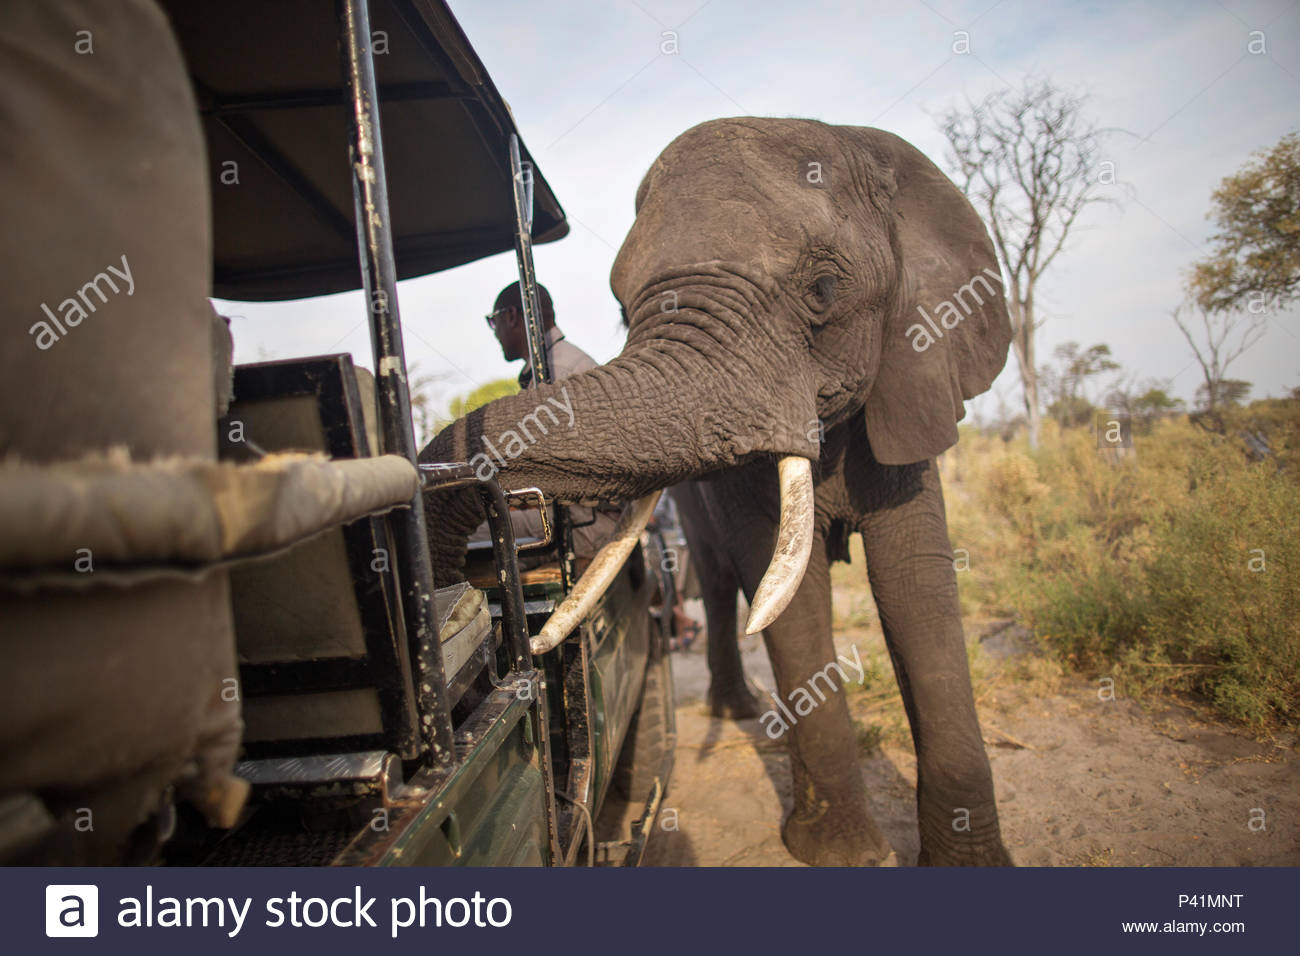 An African elephant investigates an expedition vehicle in the Okavango Delta. - Stock Image